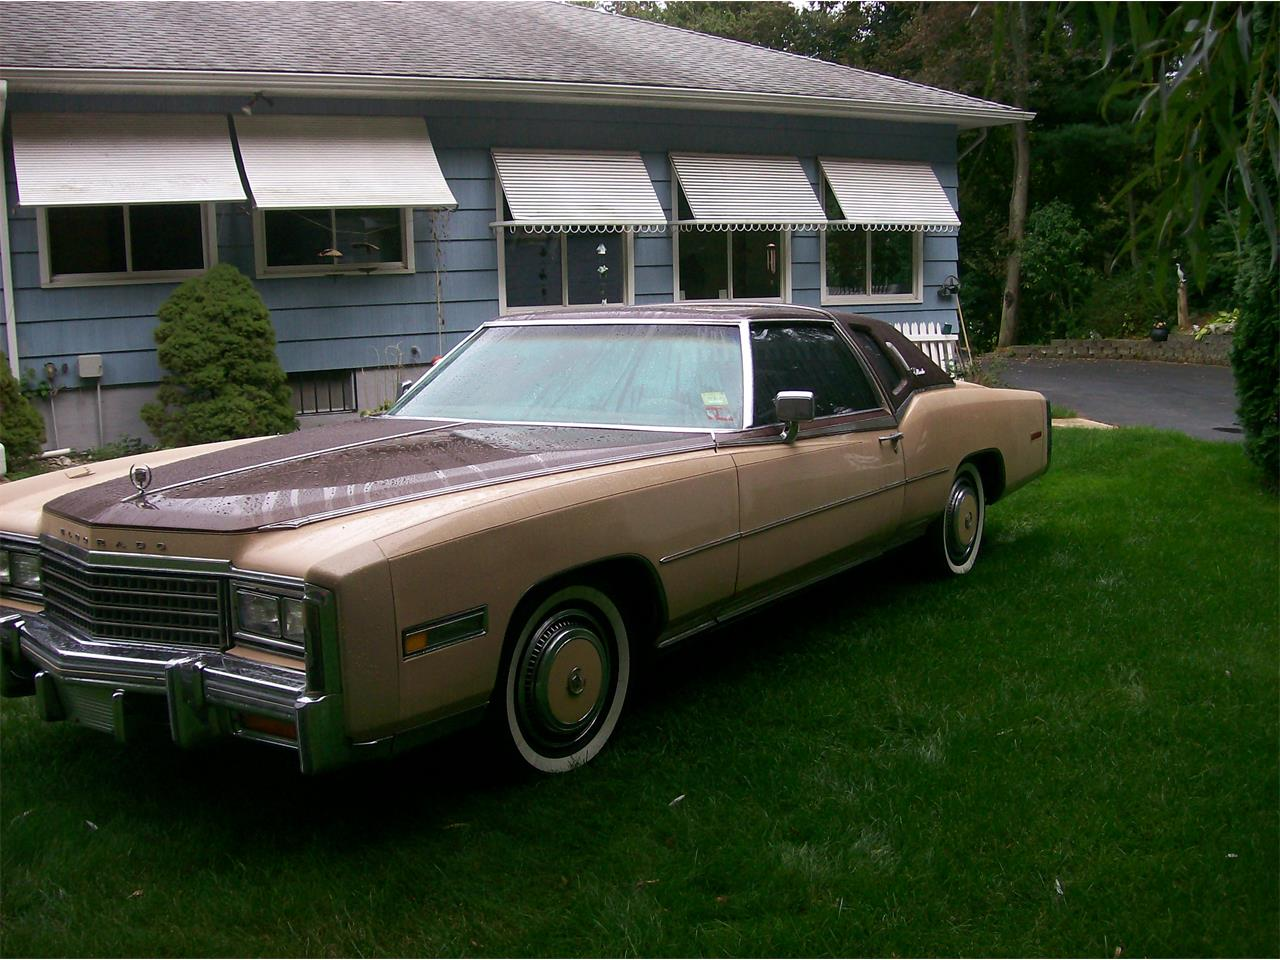 Large Picture of '78 Cadillac Eldorado Biarritz located in Branford Connecticut - $8,000.00 Offered by a Private Seller - FQEE